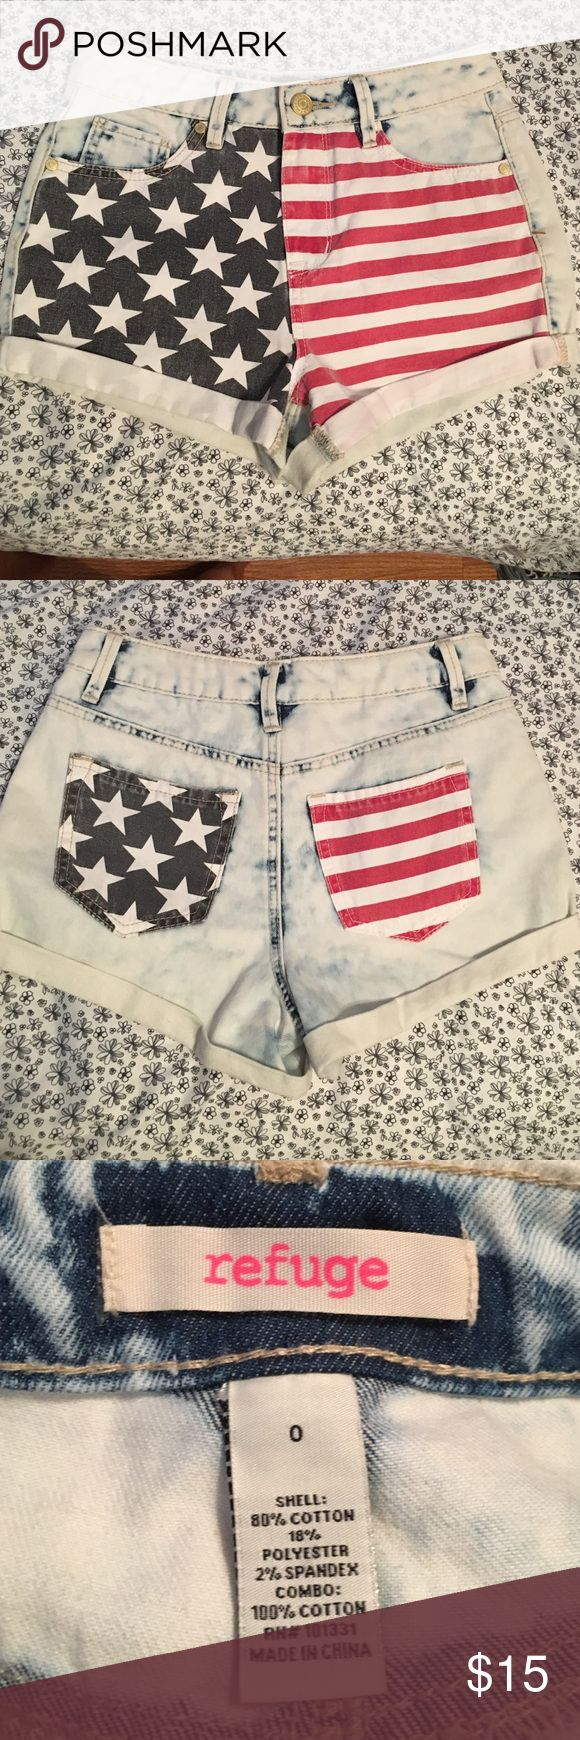 American high wasted acid washed shorts Very festive American shorts bought at Charlotte Rousse, size 0. Wore once love them but they don't fit anymore. Great condition! NOT really American eagle, they are refuge. American Eagle Outfitters Shorts Jean Shorts